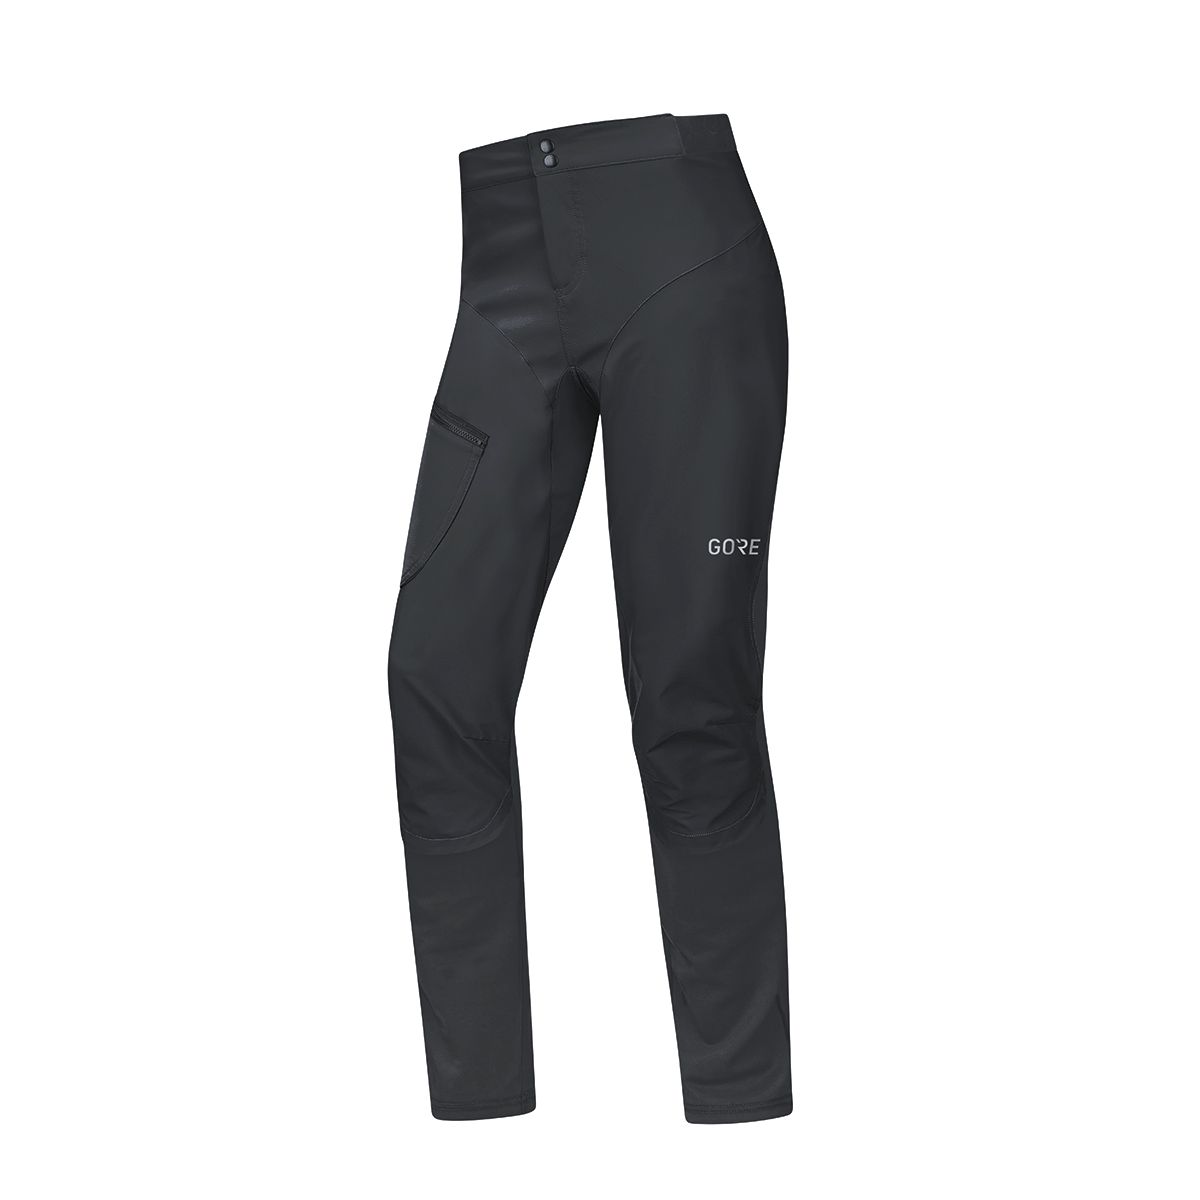 C5 GORE WINDSTOPPER TRAIL 2IN1 PANTS